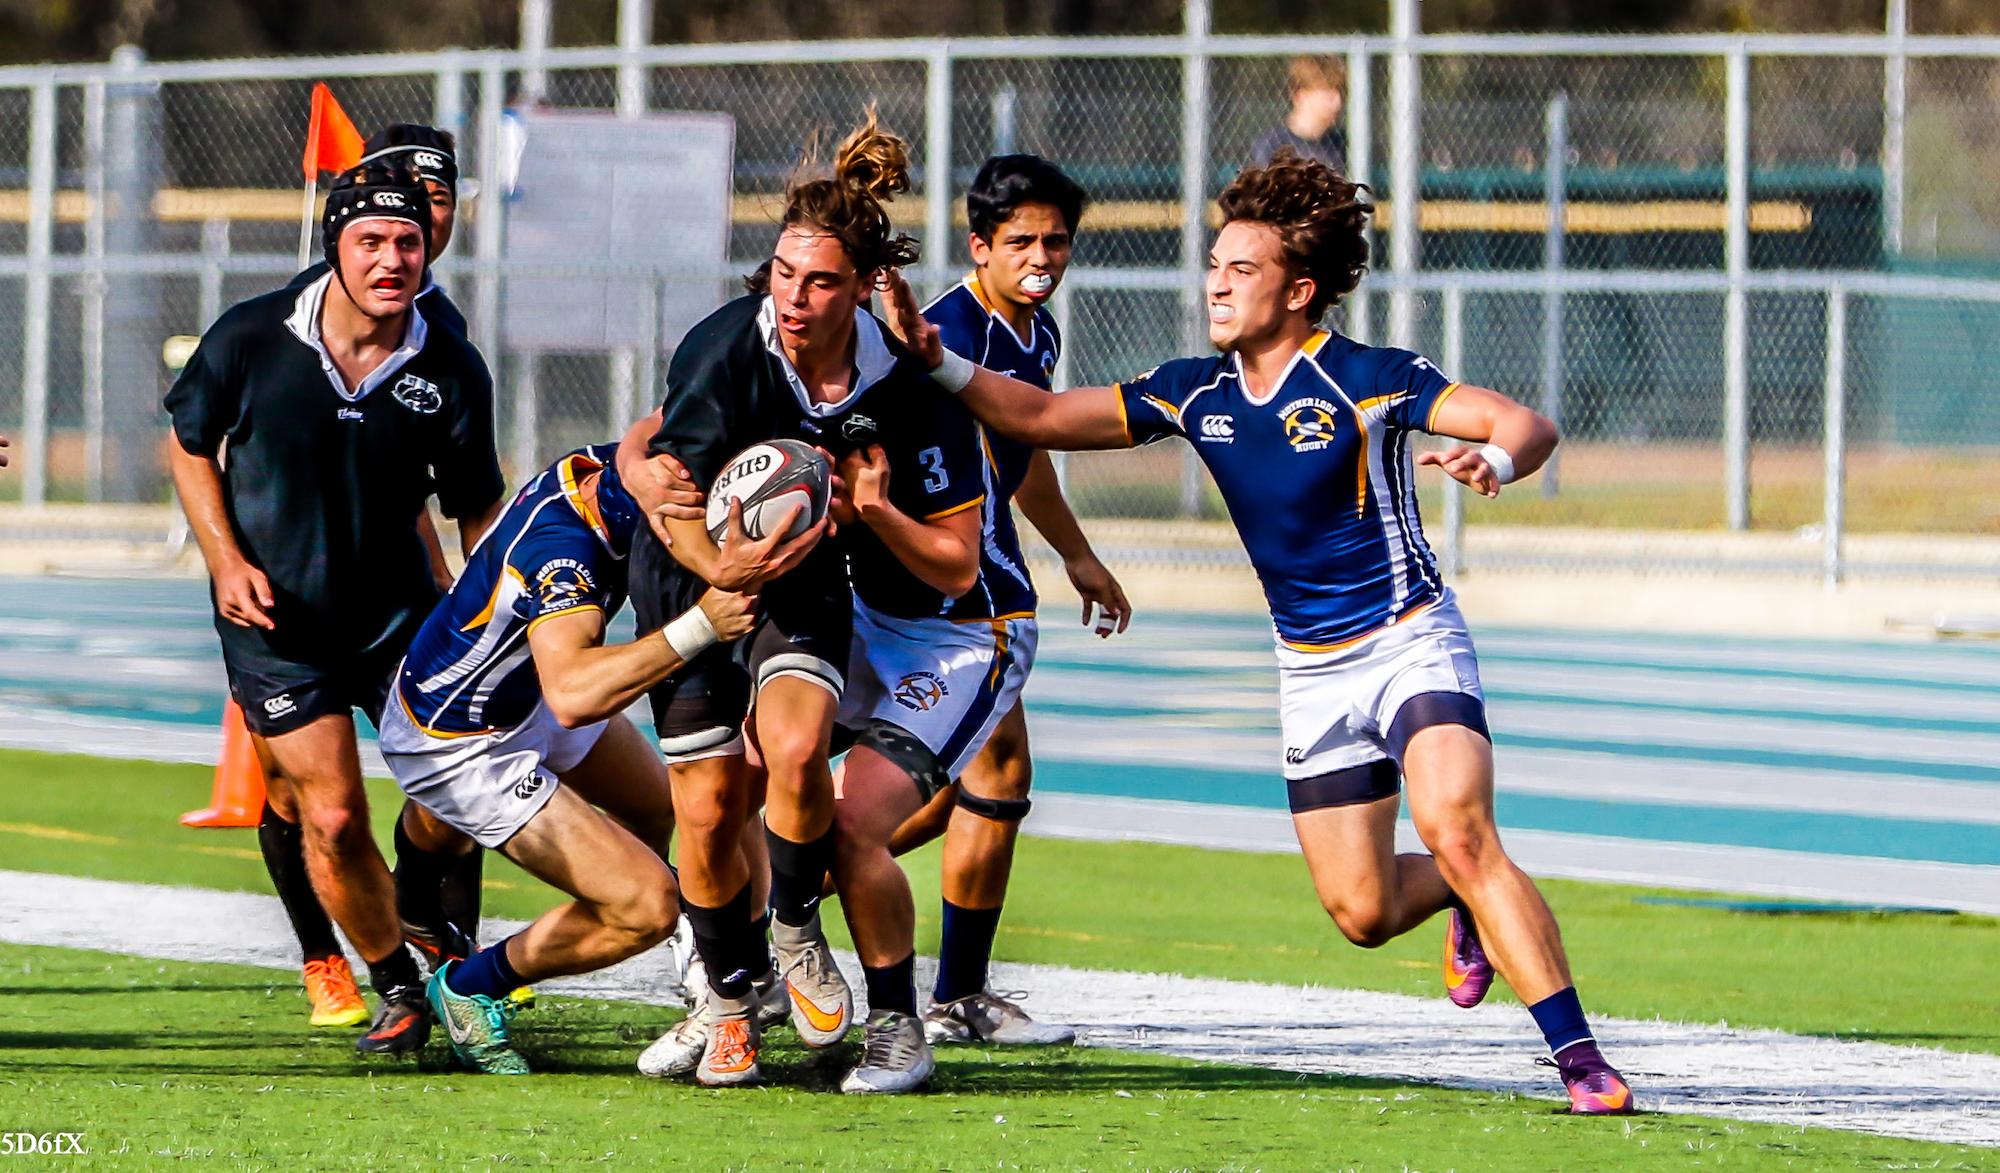 Granite Bay rugby v Mother Lode March 11, 2017. Dan Bandoni photo.